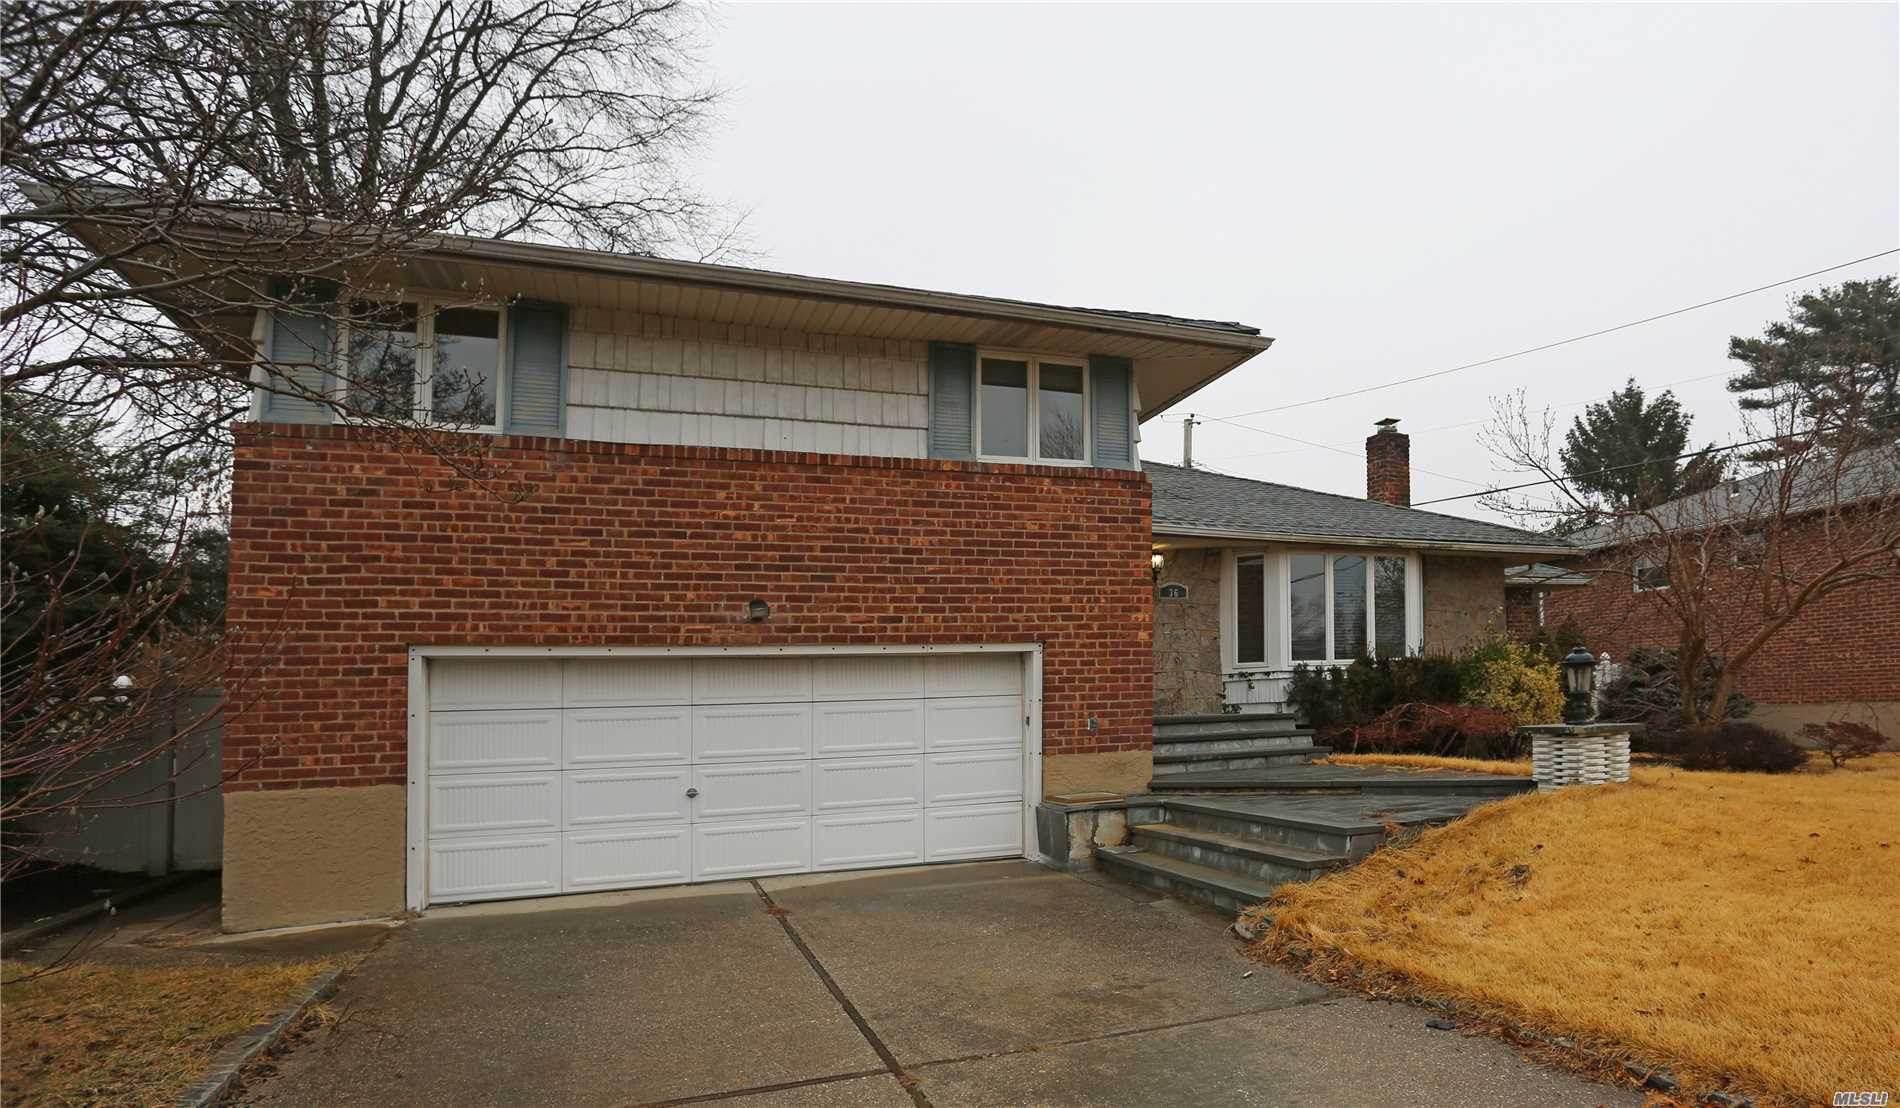 Brick, Split Home With 4 Bedrooms And 3 1/2 Baths In Birchwood Park Section . Large Master Suite On The First Floor With Large Master Bath. New Kitchen Appliances. House Has Great Potential. Must See1